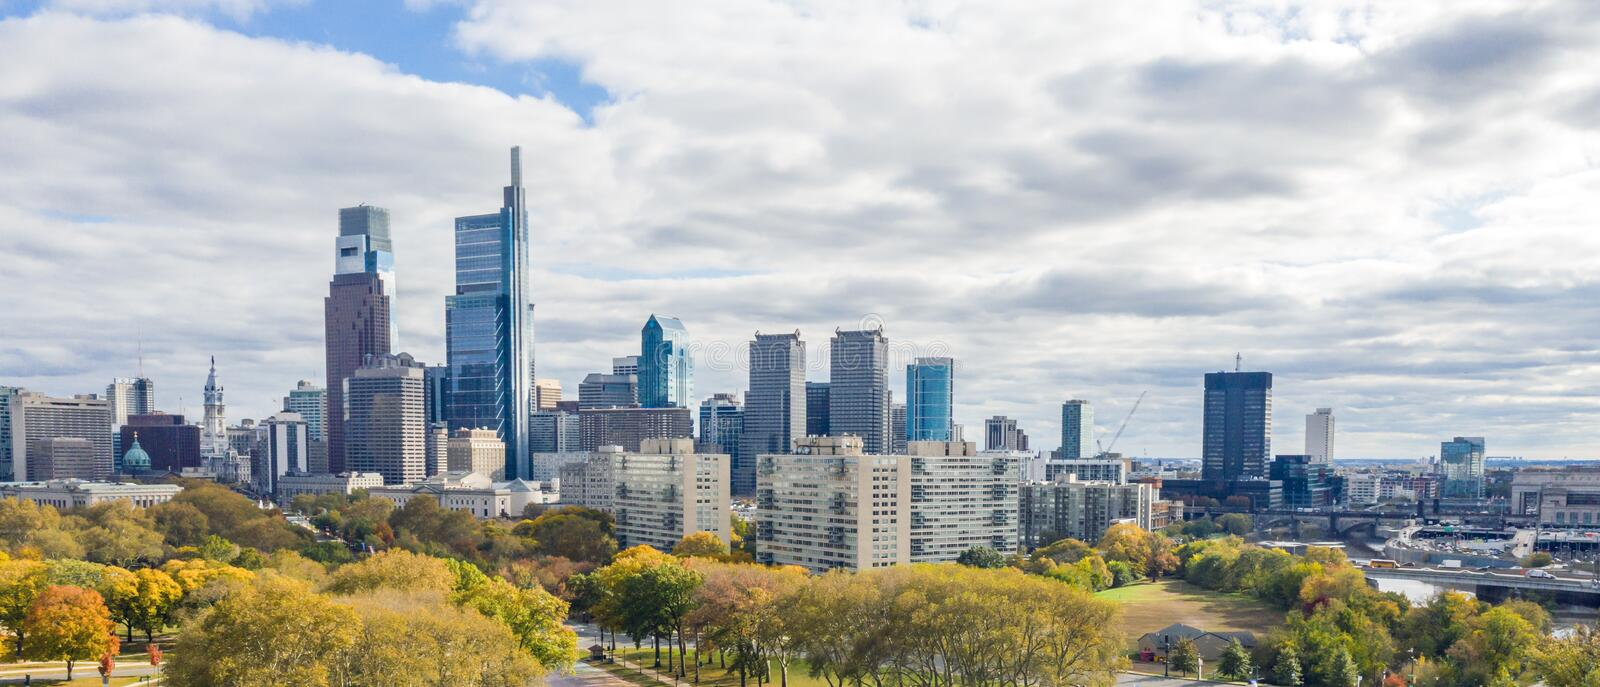 Drone view on the Philadelphia Skyline. Picture shows a drone view on the Philadelphia Skyline royalty free stock images